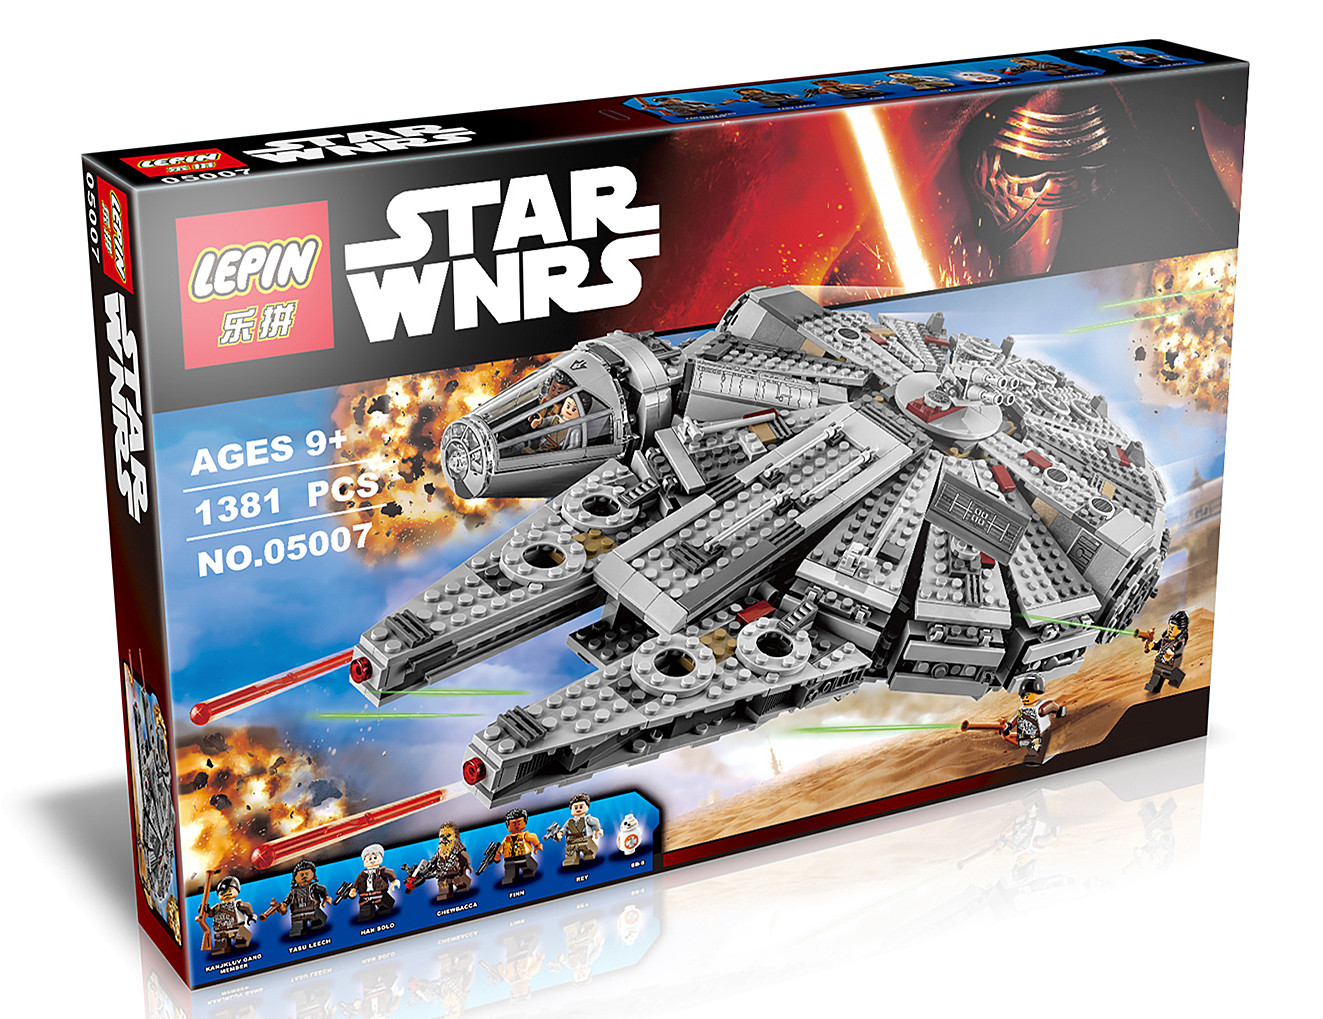 1381+ PCS Building Bricks, LP 05007 Building Blocks 75105 Star Wars Millennium Falcon.